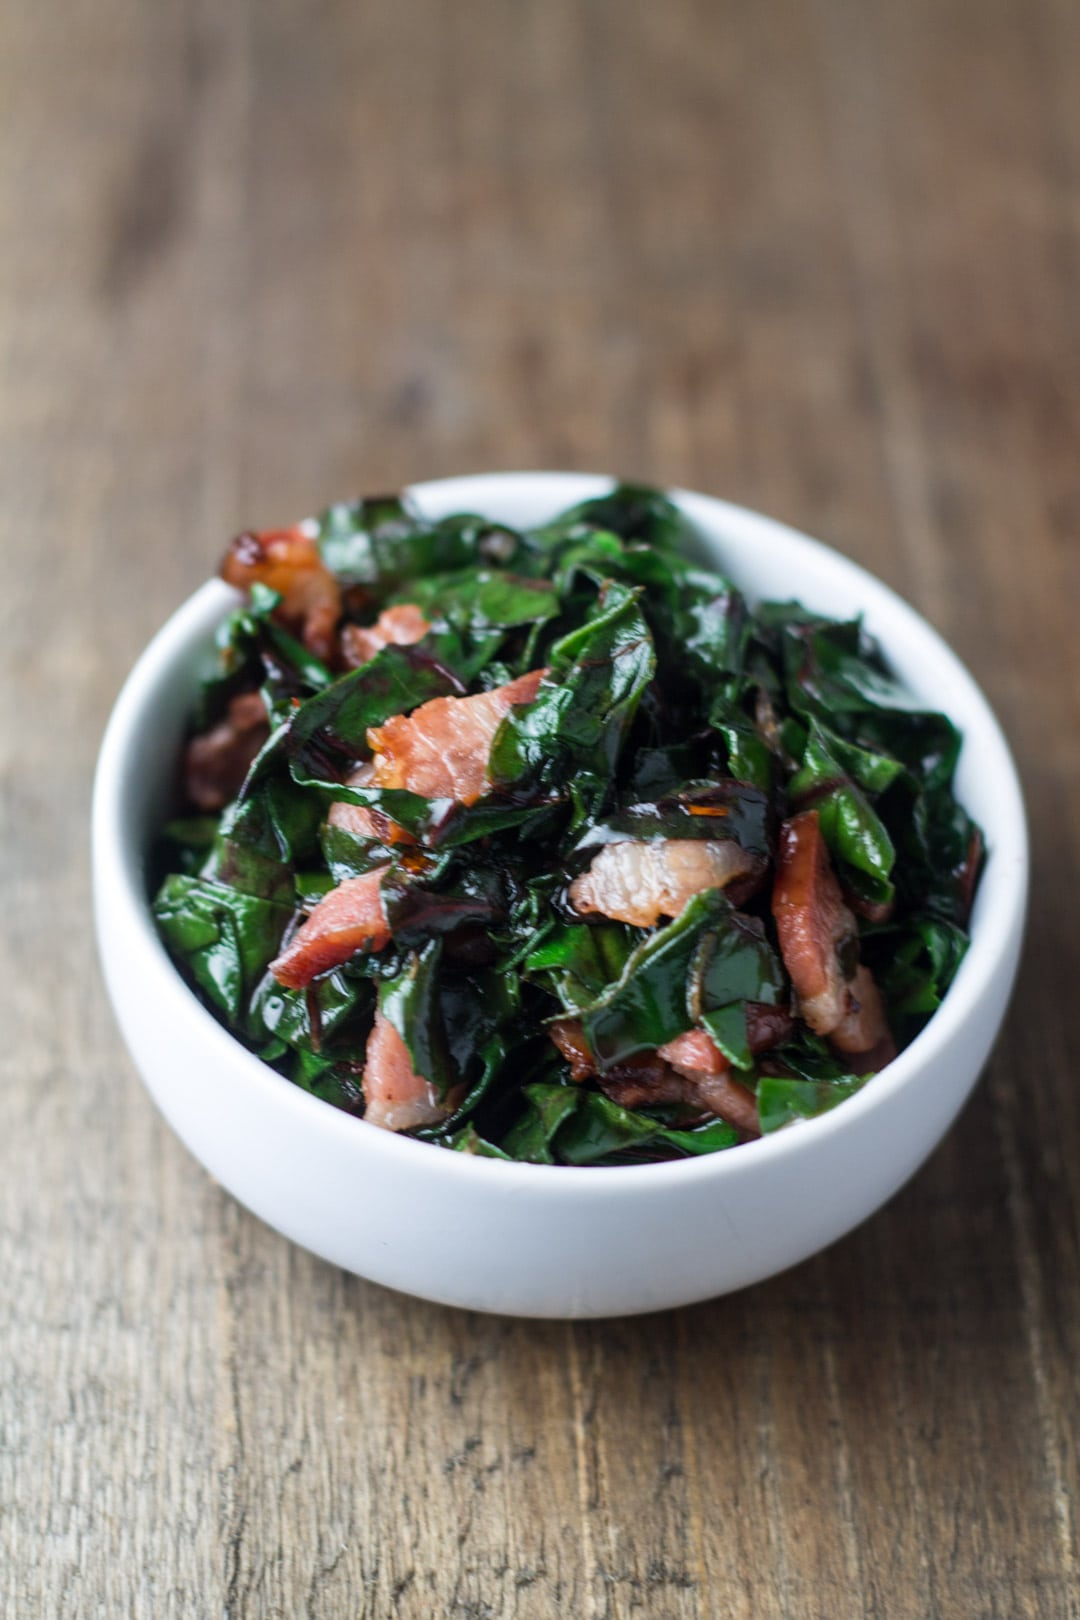 A small bowl of Swiss chard and bacon crumbles.